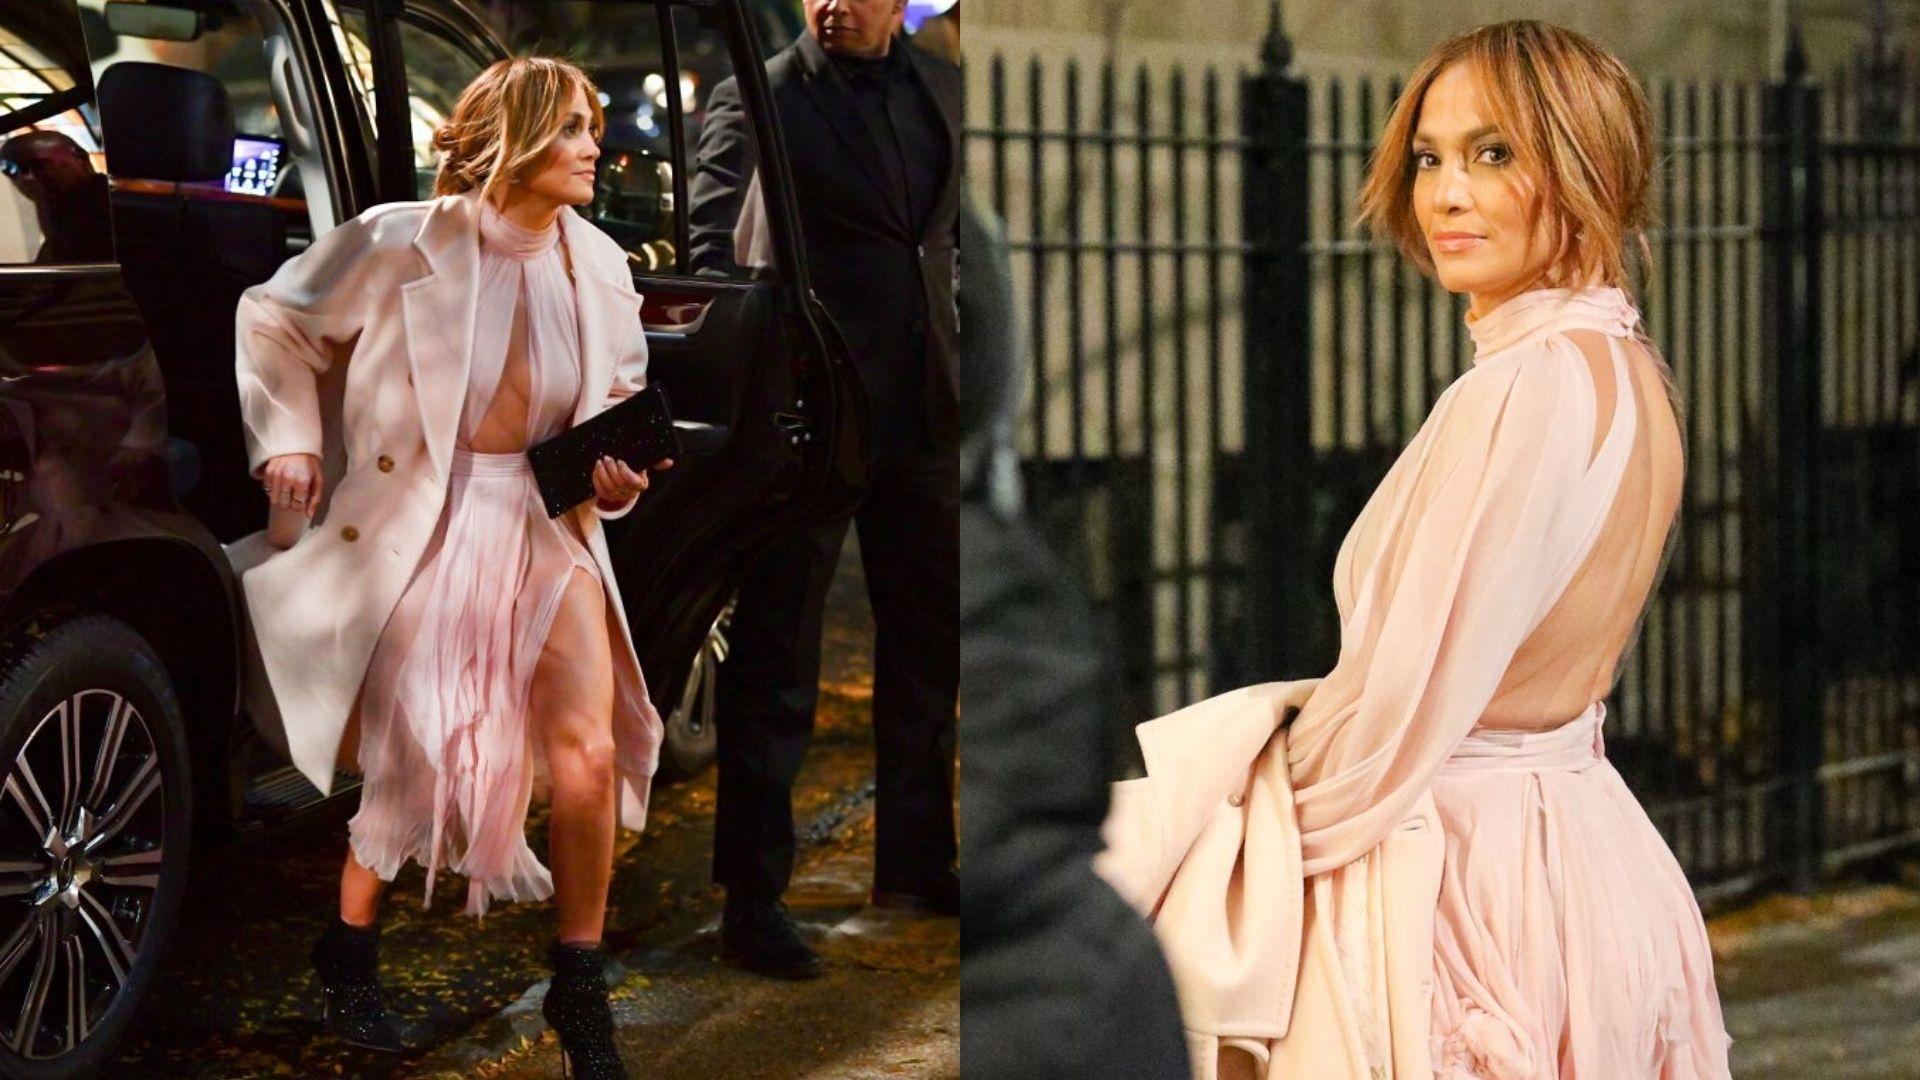 Jennifer Lopez's Blush Pink Cut-Out Dress Features A Thigh-High Leg Slit